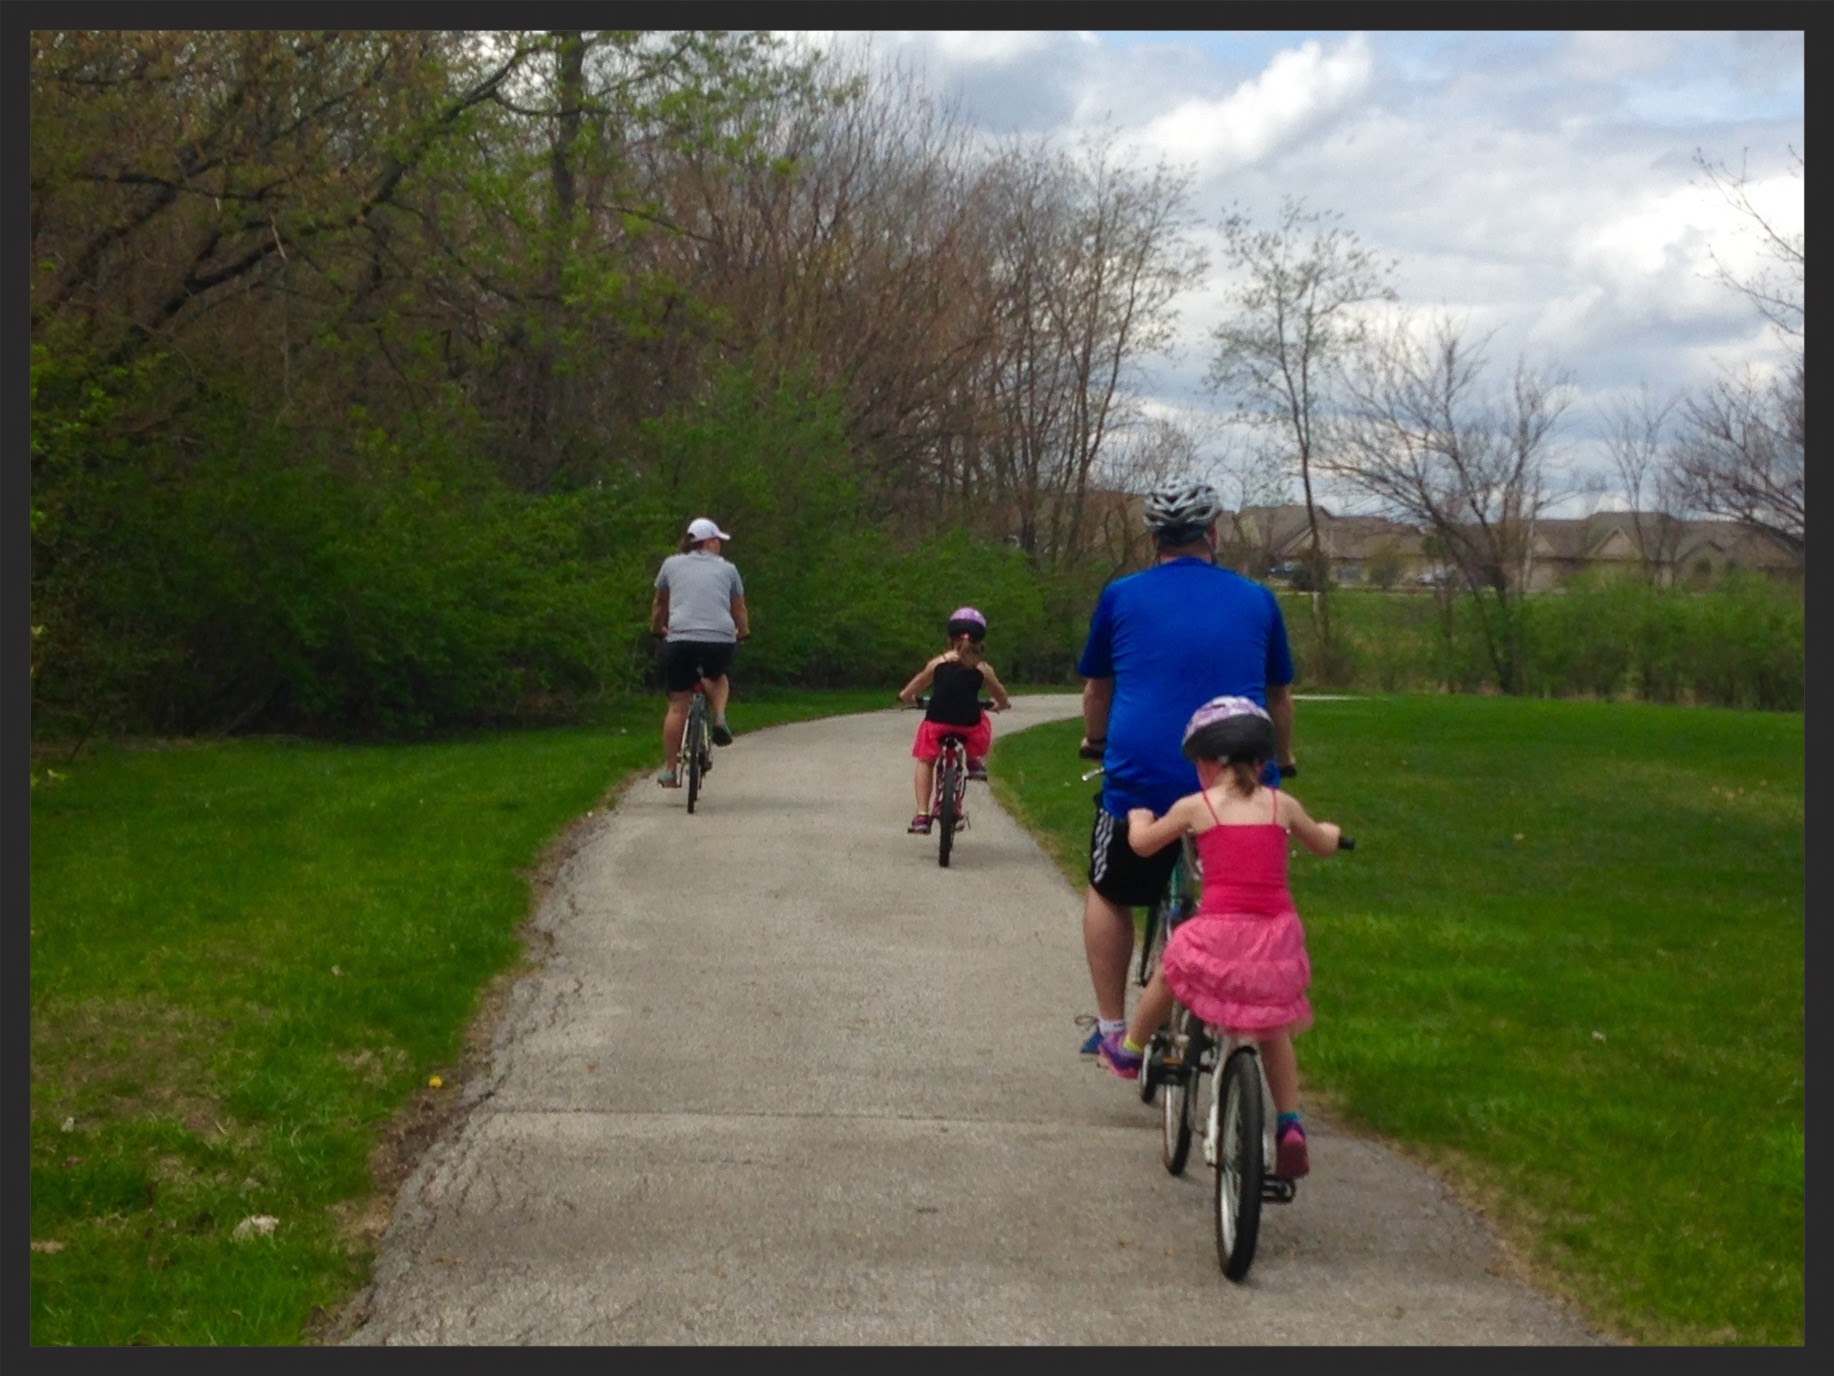 Iowa-Bike-Rides-Family-Kids-Trails